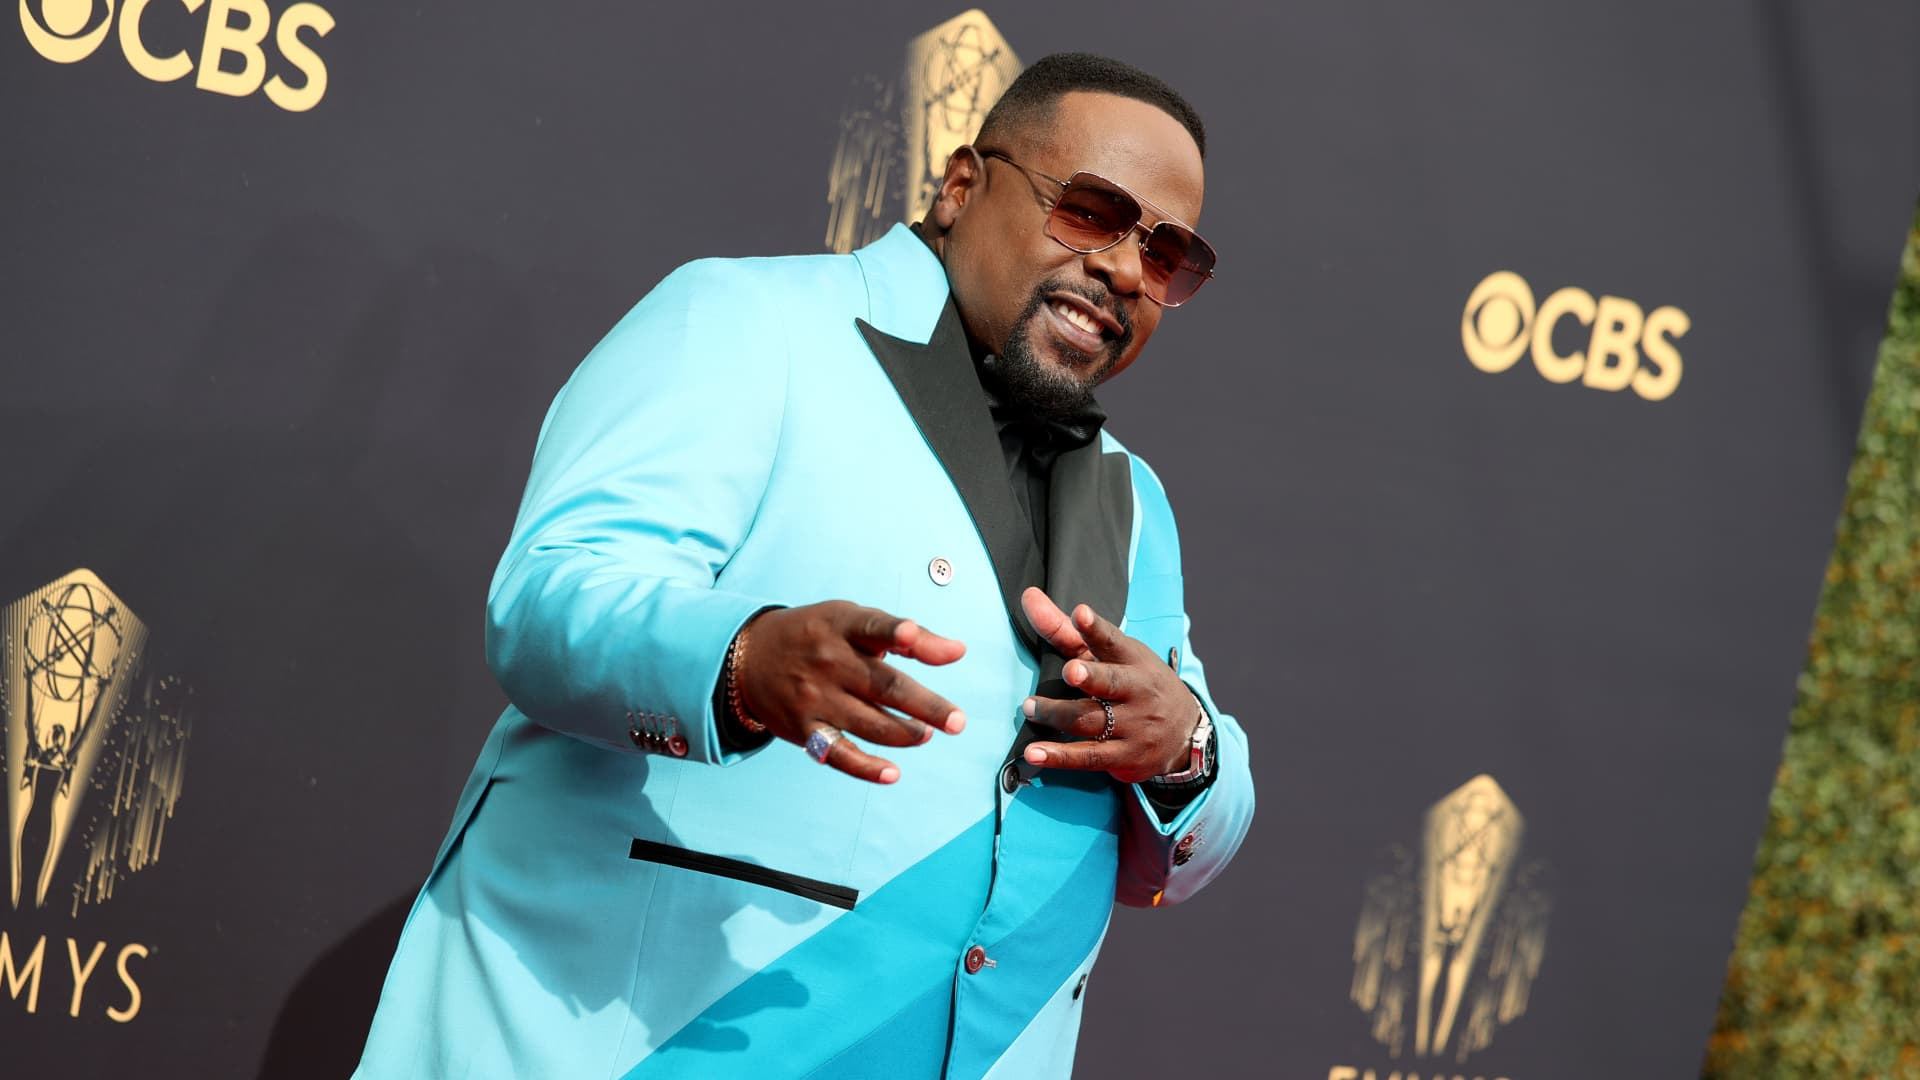 Host Cedric the Entertainer attends the 73rd Primetime Emmy Awards on September 19, 2021 in Los Angeles, California.